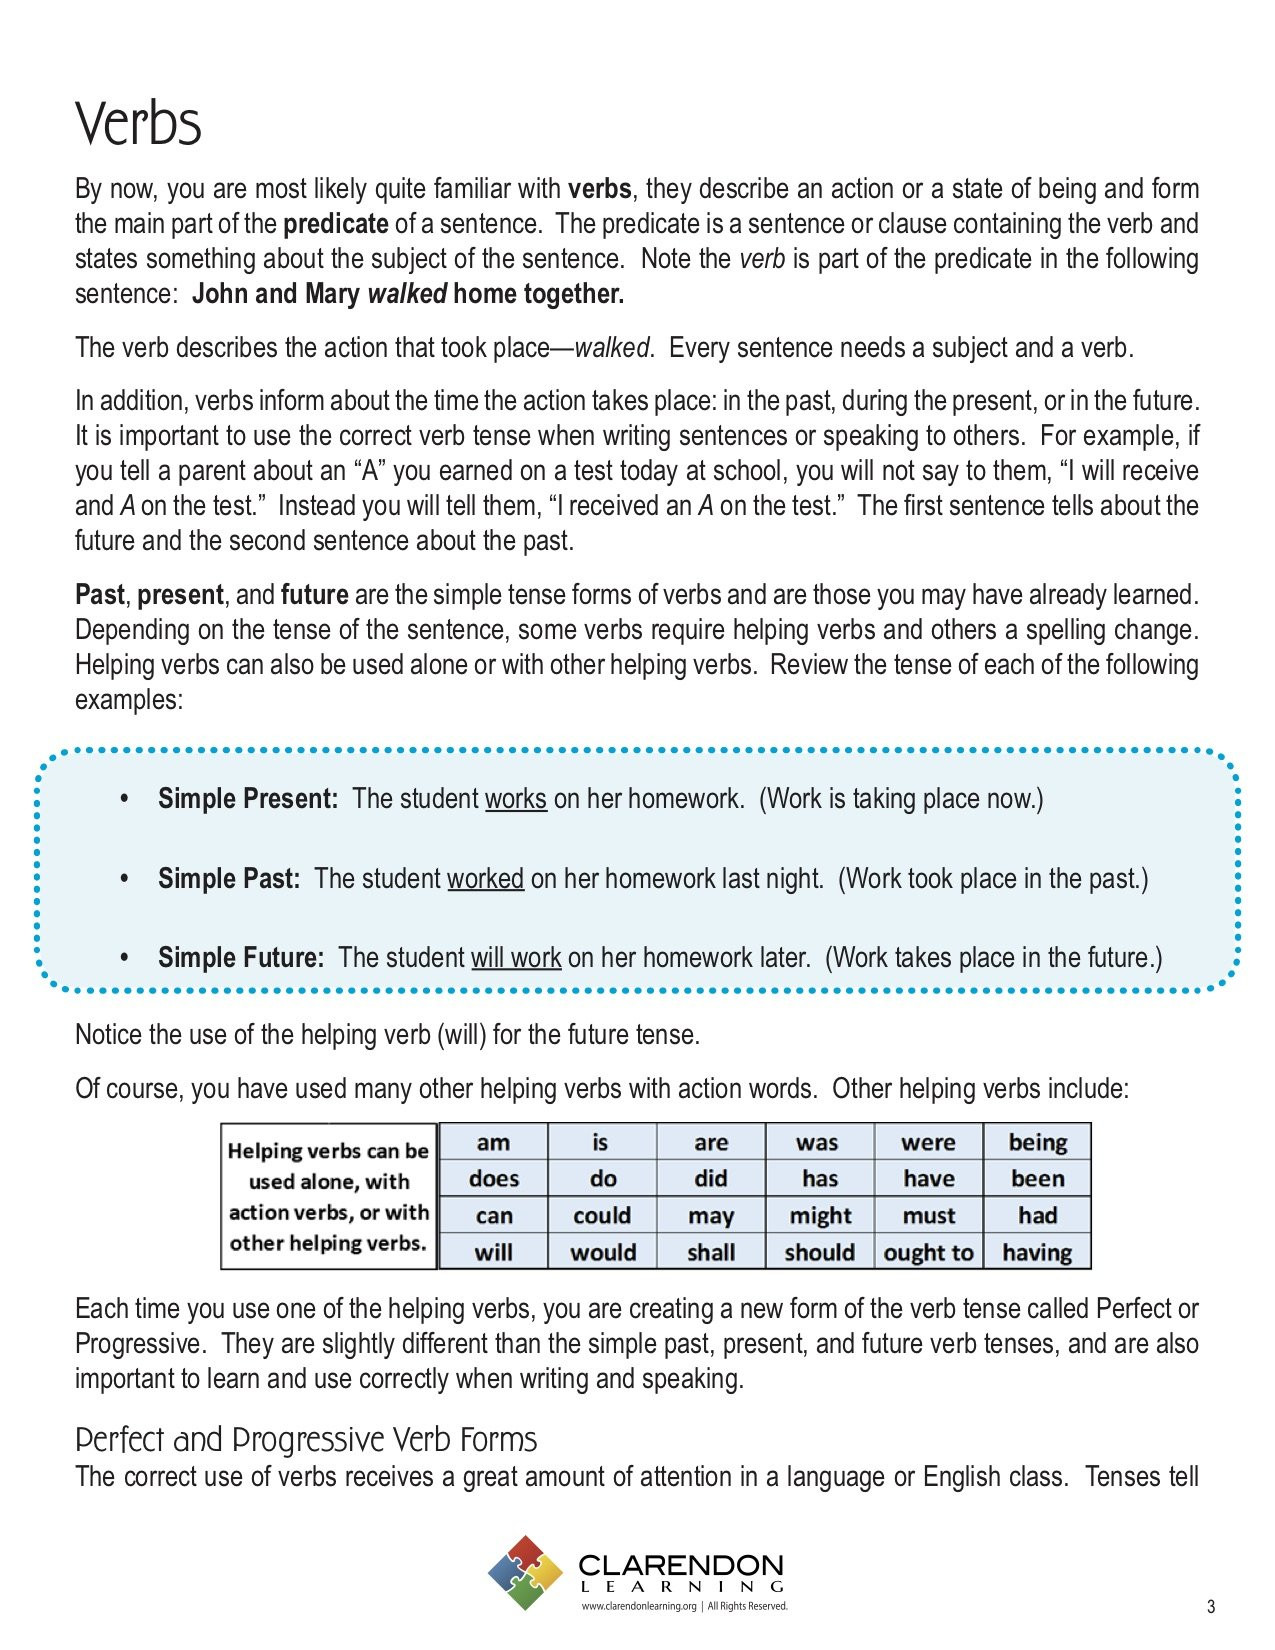 Verb Tense Worksheets 5th Grade Verb Tenses Lesson Plan